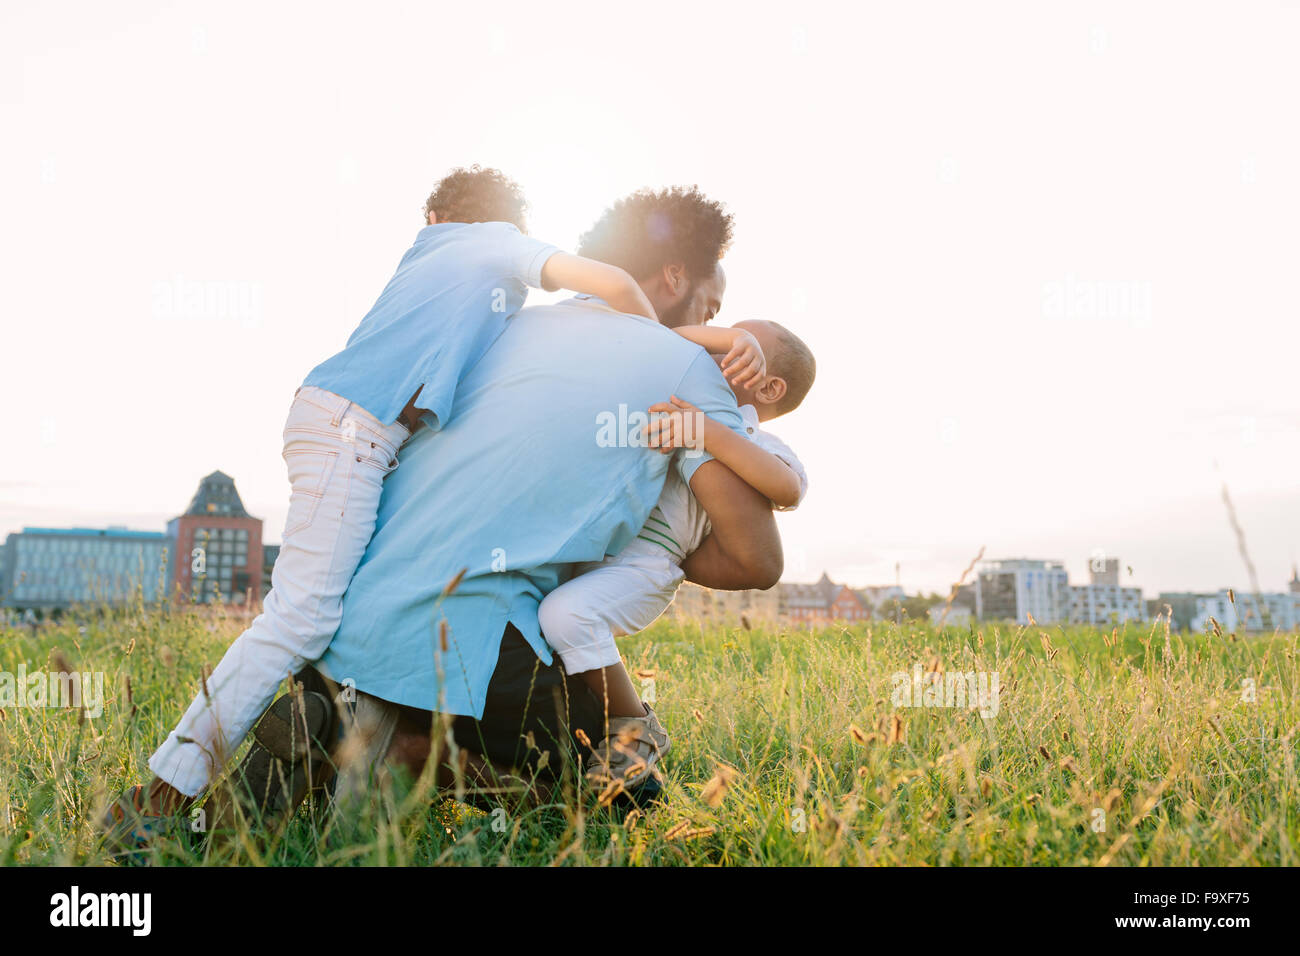 Germany, Cologne, playful father with two sons in field - Stock Image